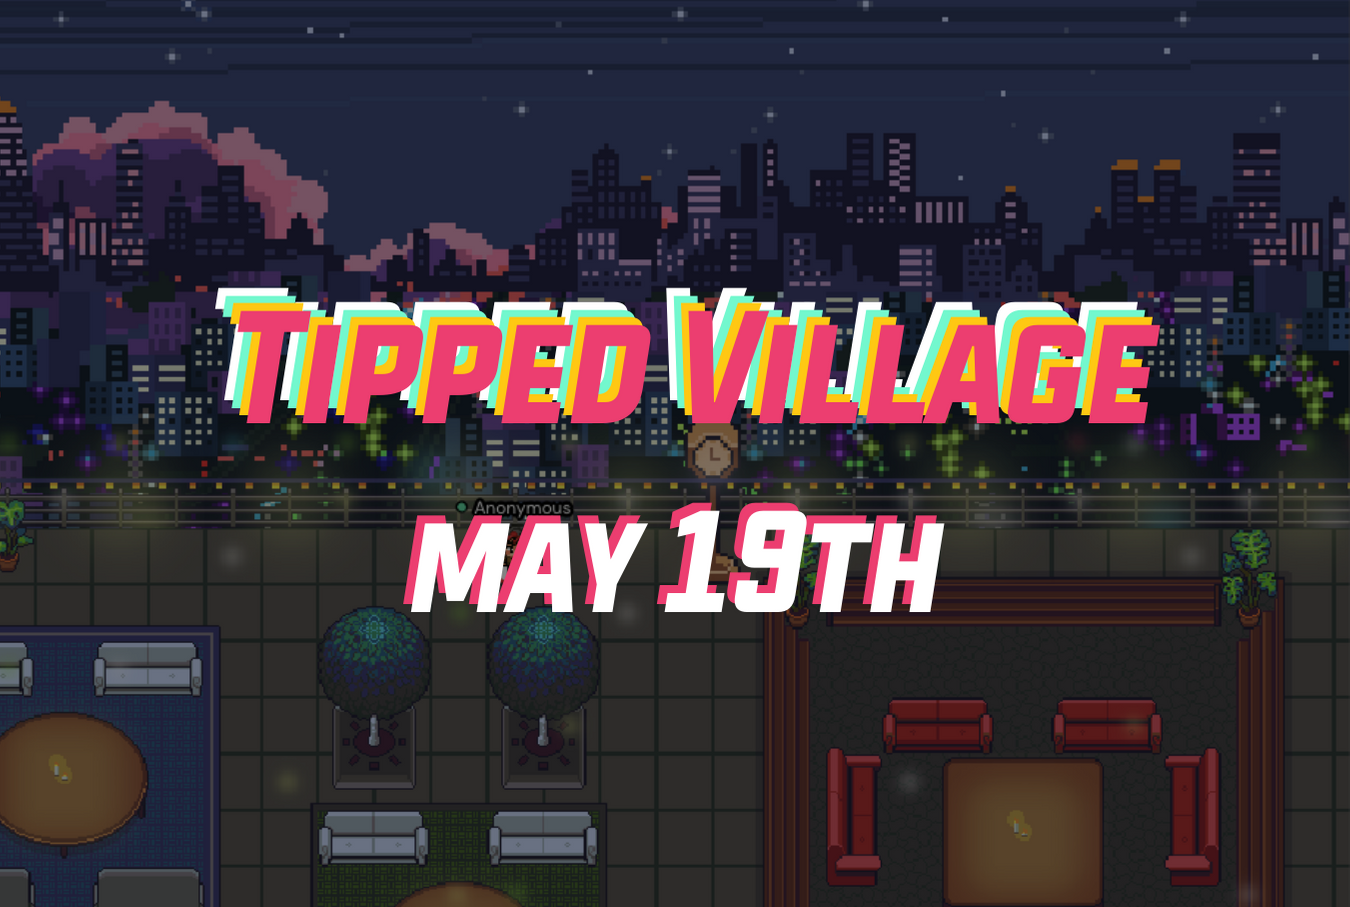 Tipped Village: May 19th